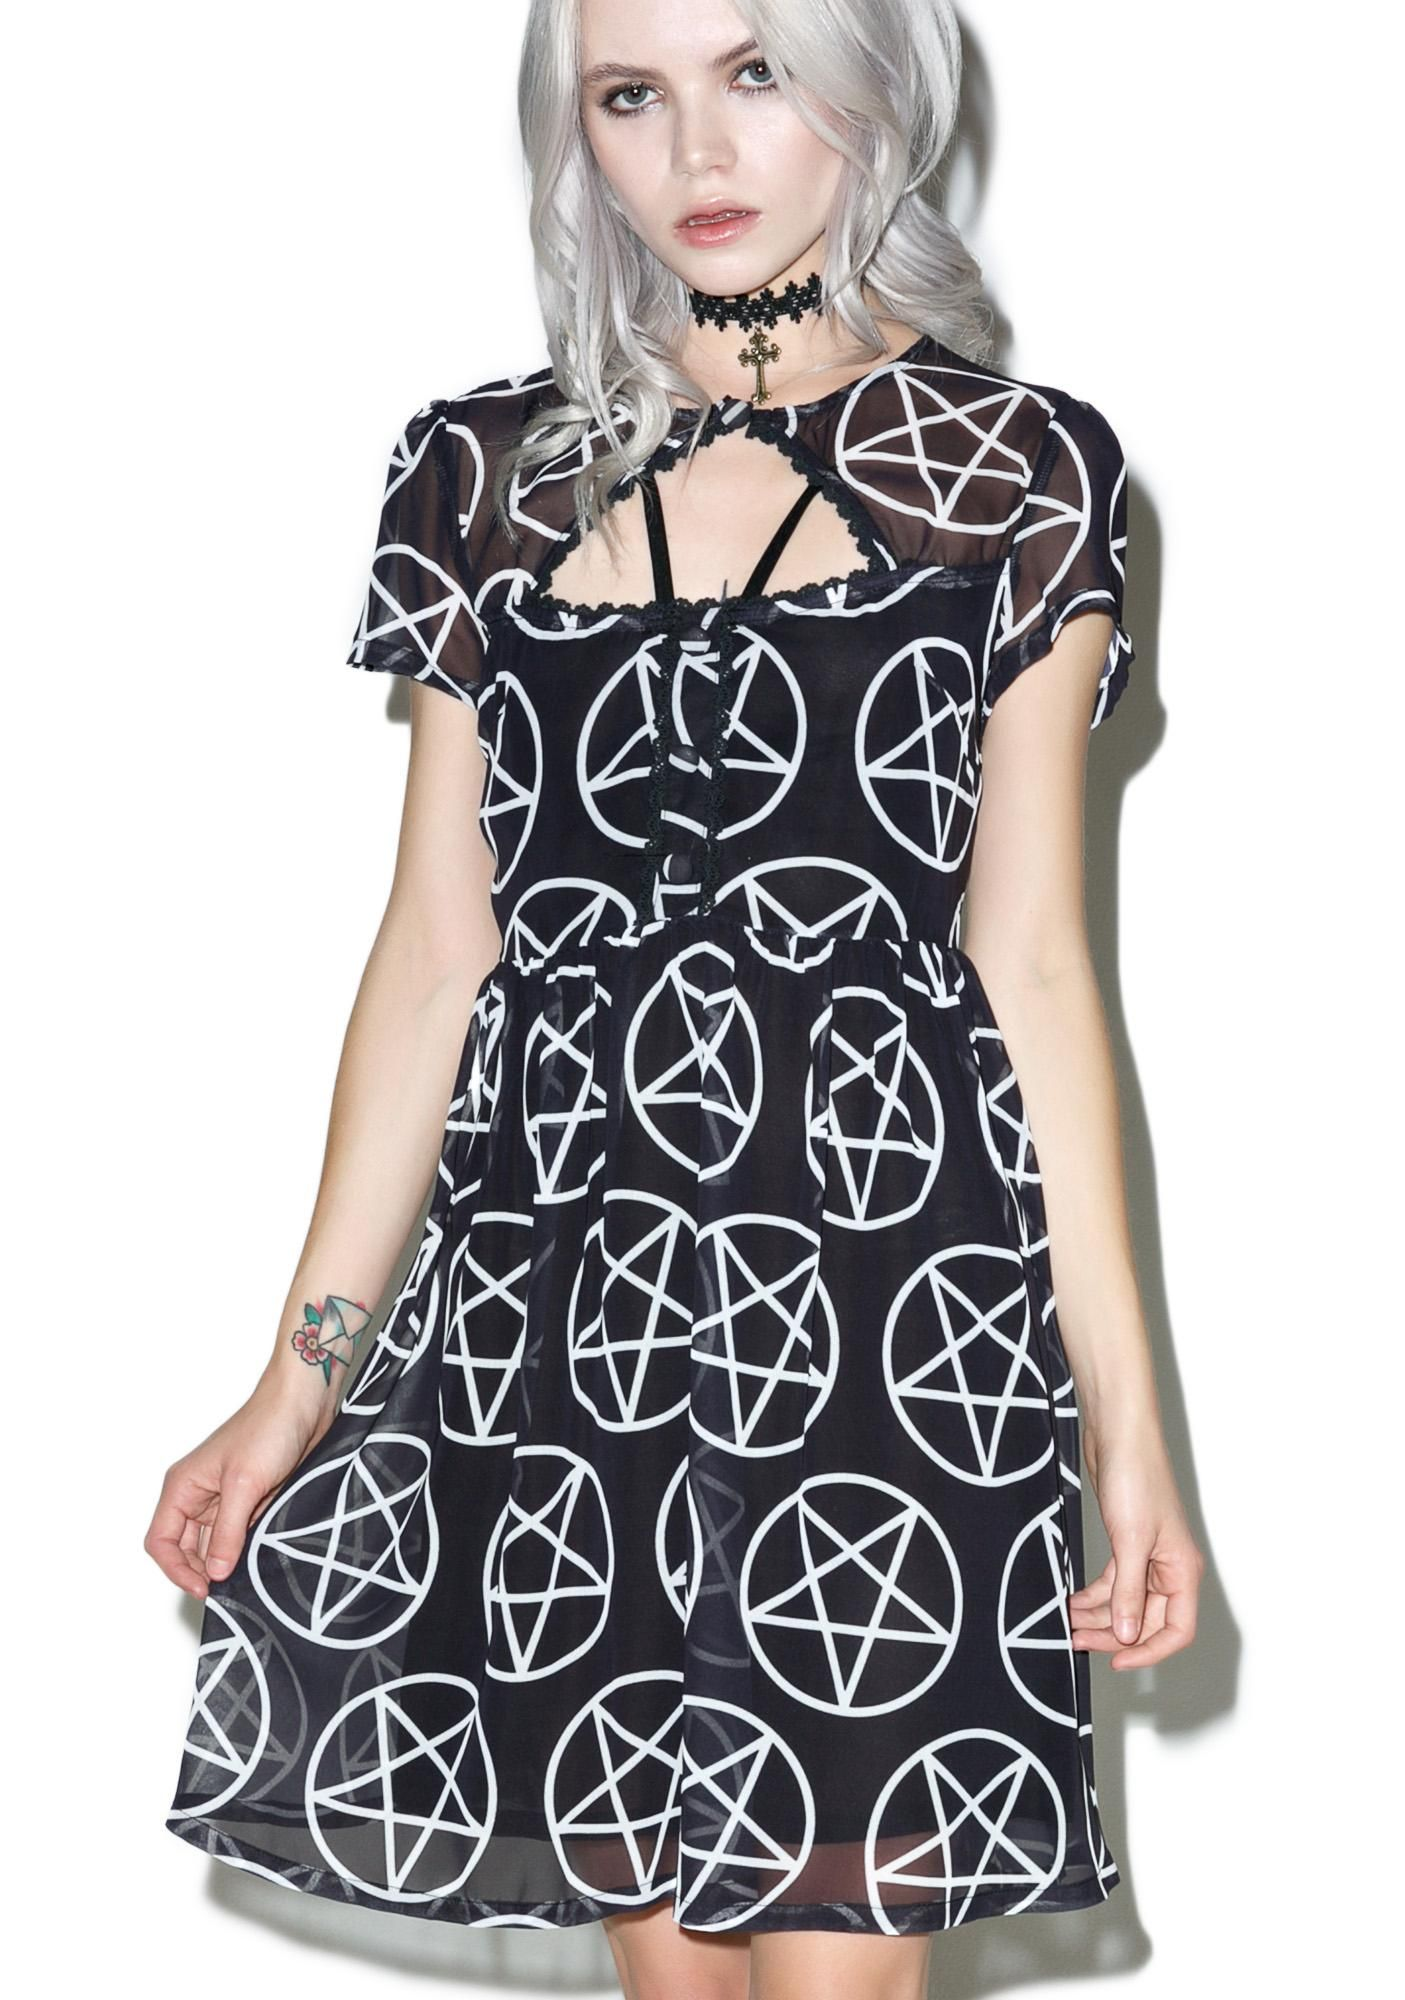 Killstar Hayley Hex Dress cuz yer a girl about town, leavin' a trail of curses 'n broken hearts… This utterly adorable babydoll dress features a soft 'n flowy chiffon construction plastered with white pentagrams, cap sleeves, a chest cutout with strappy details and button closure, back cutout, lightly pleated skirt, and a concealed side zip closure.